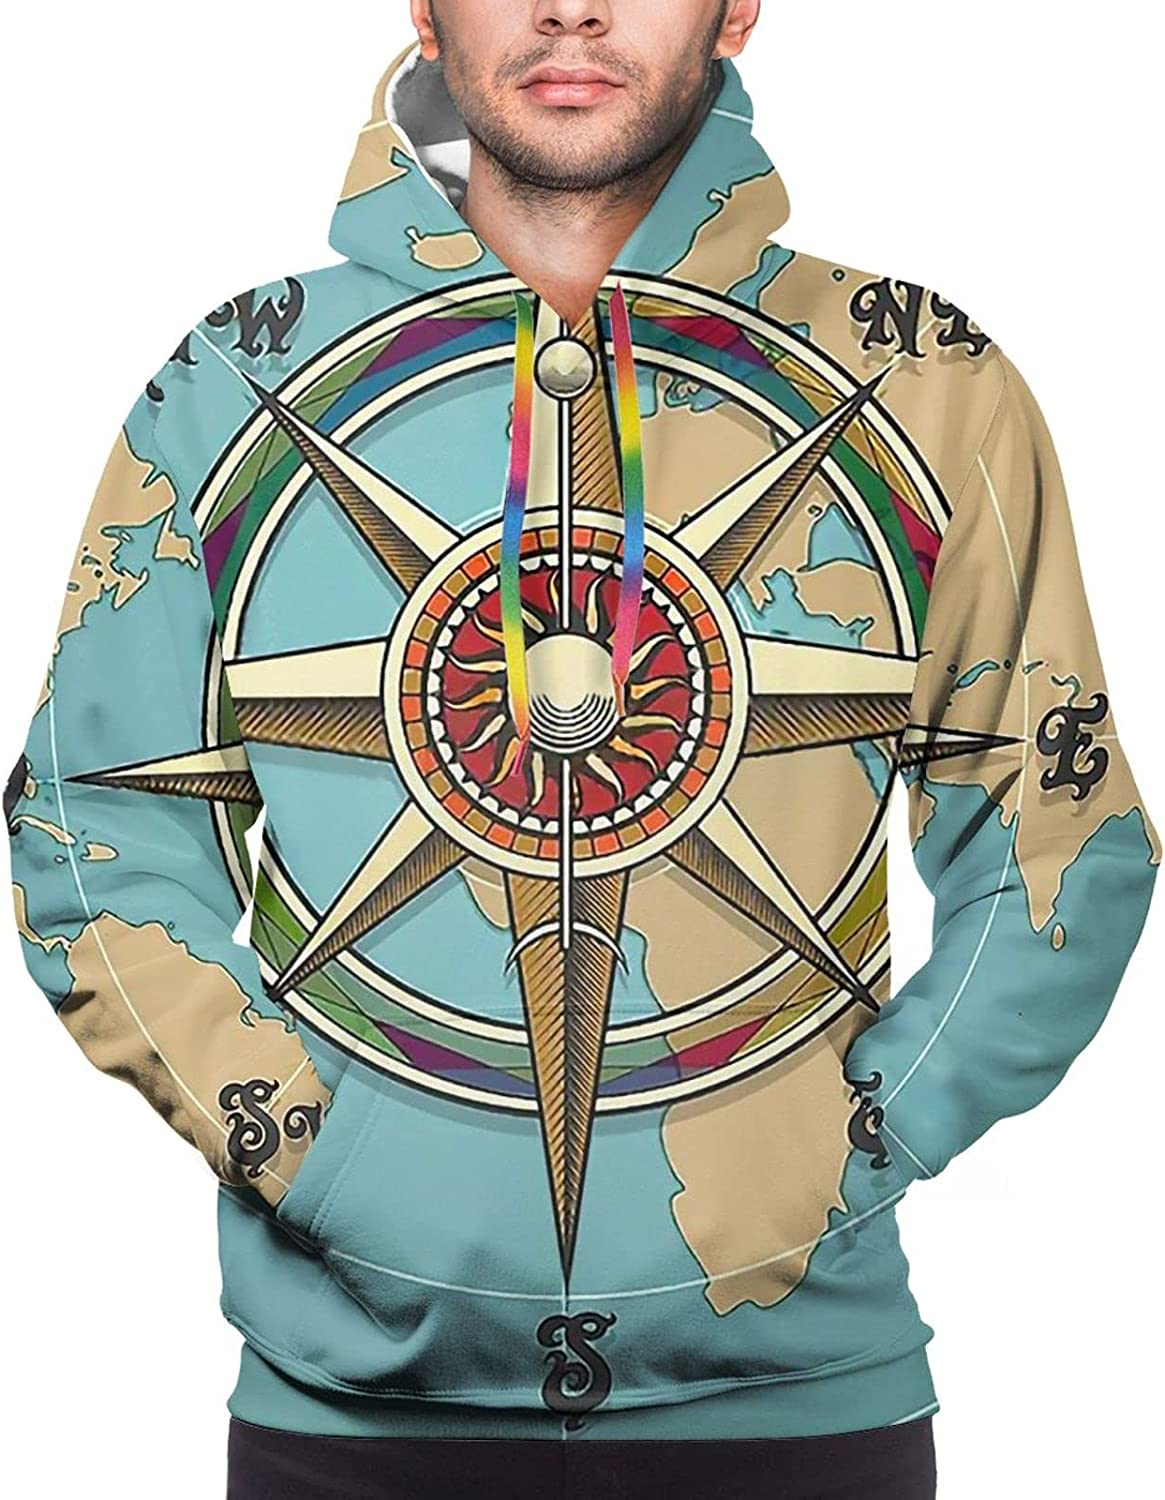 Hoodie For Teens Boys Girls Compass And World Map Hoodies Pullover Sweatshirt Pockets